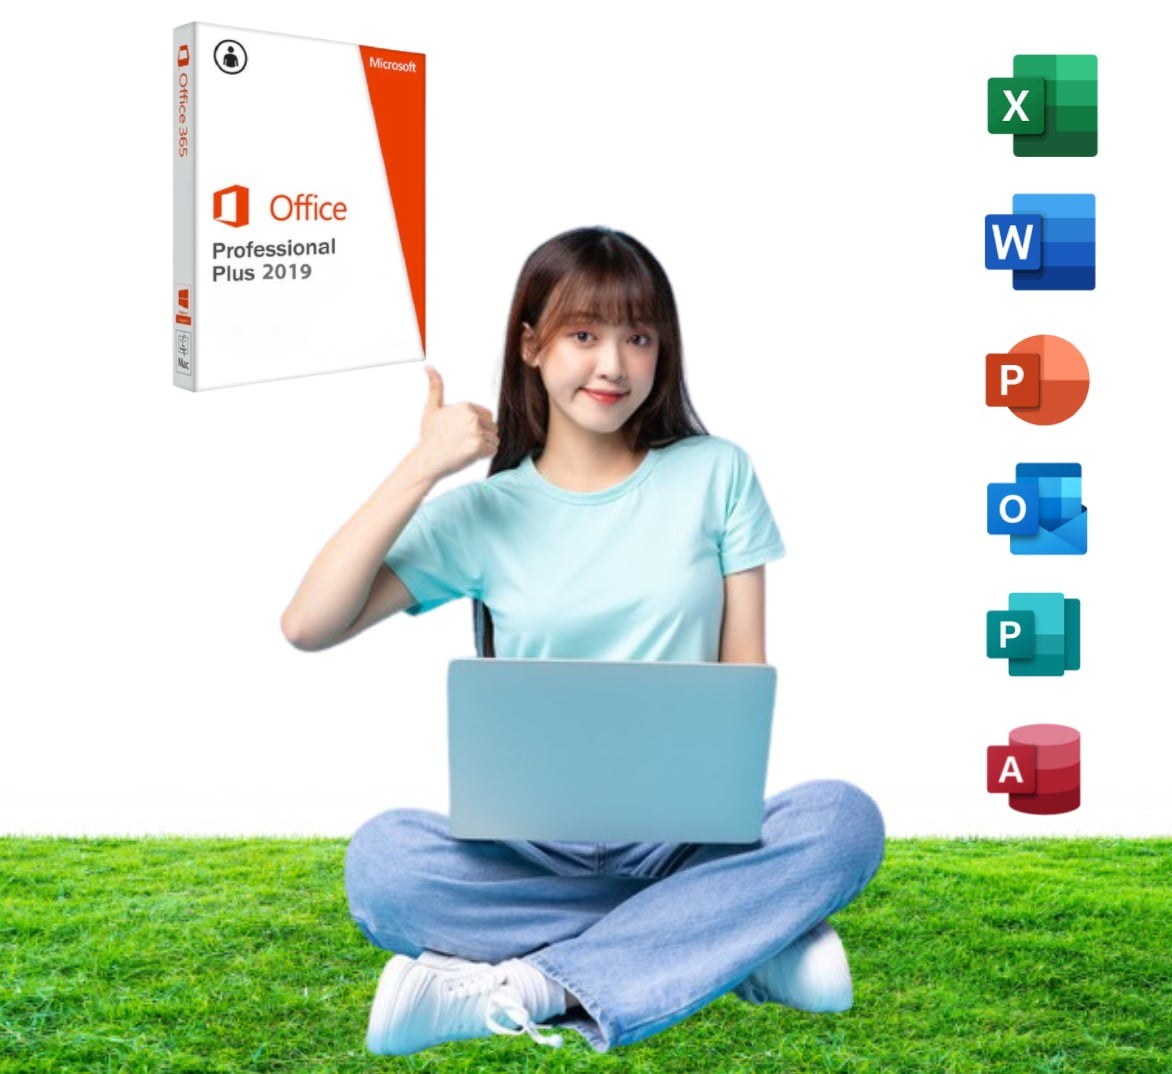 about Microsoft Office Professional Plus 2019